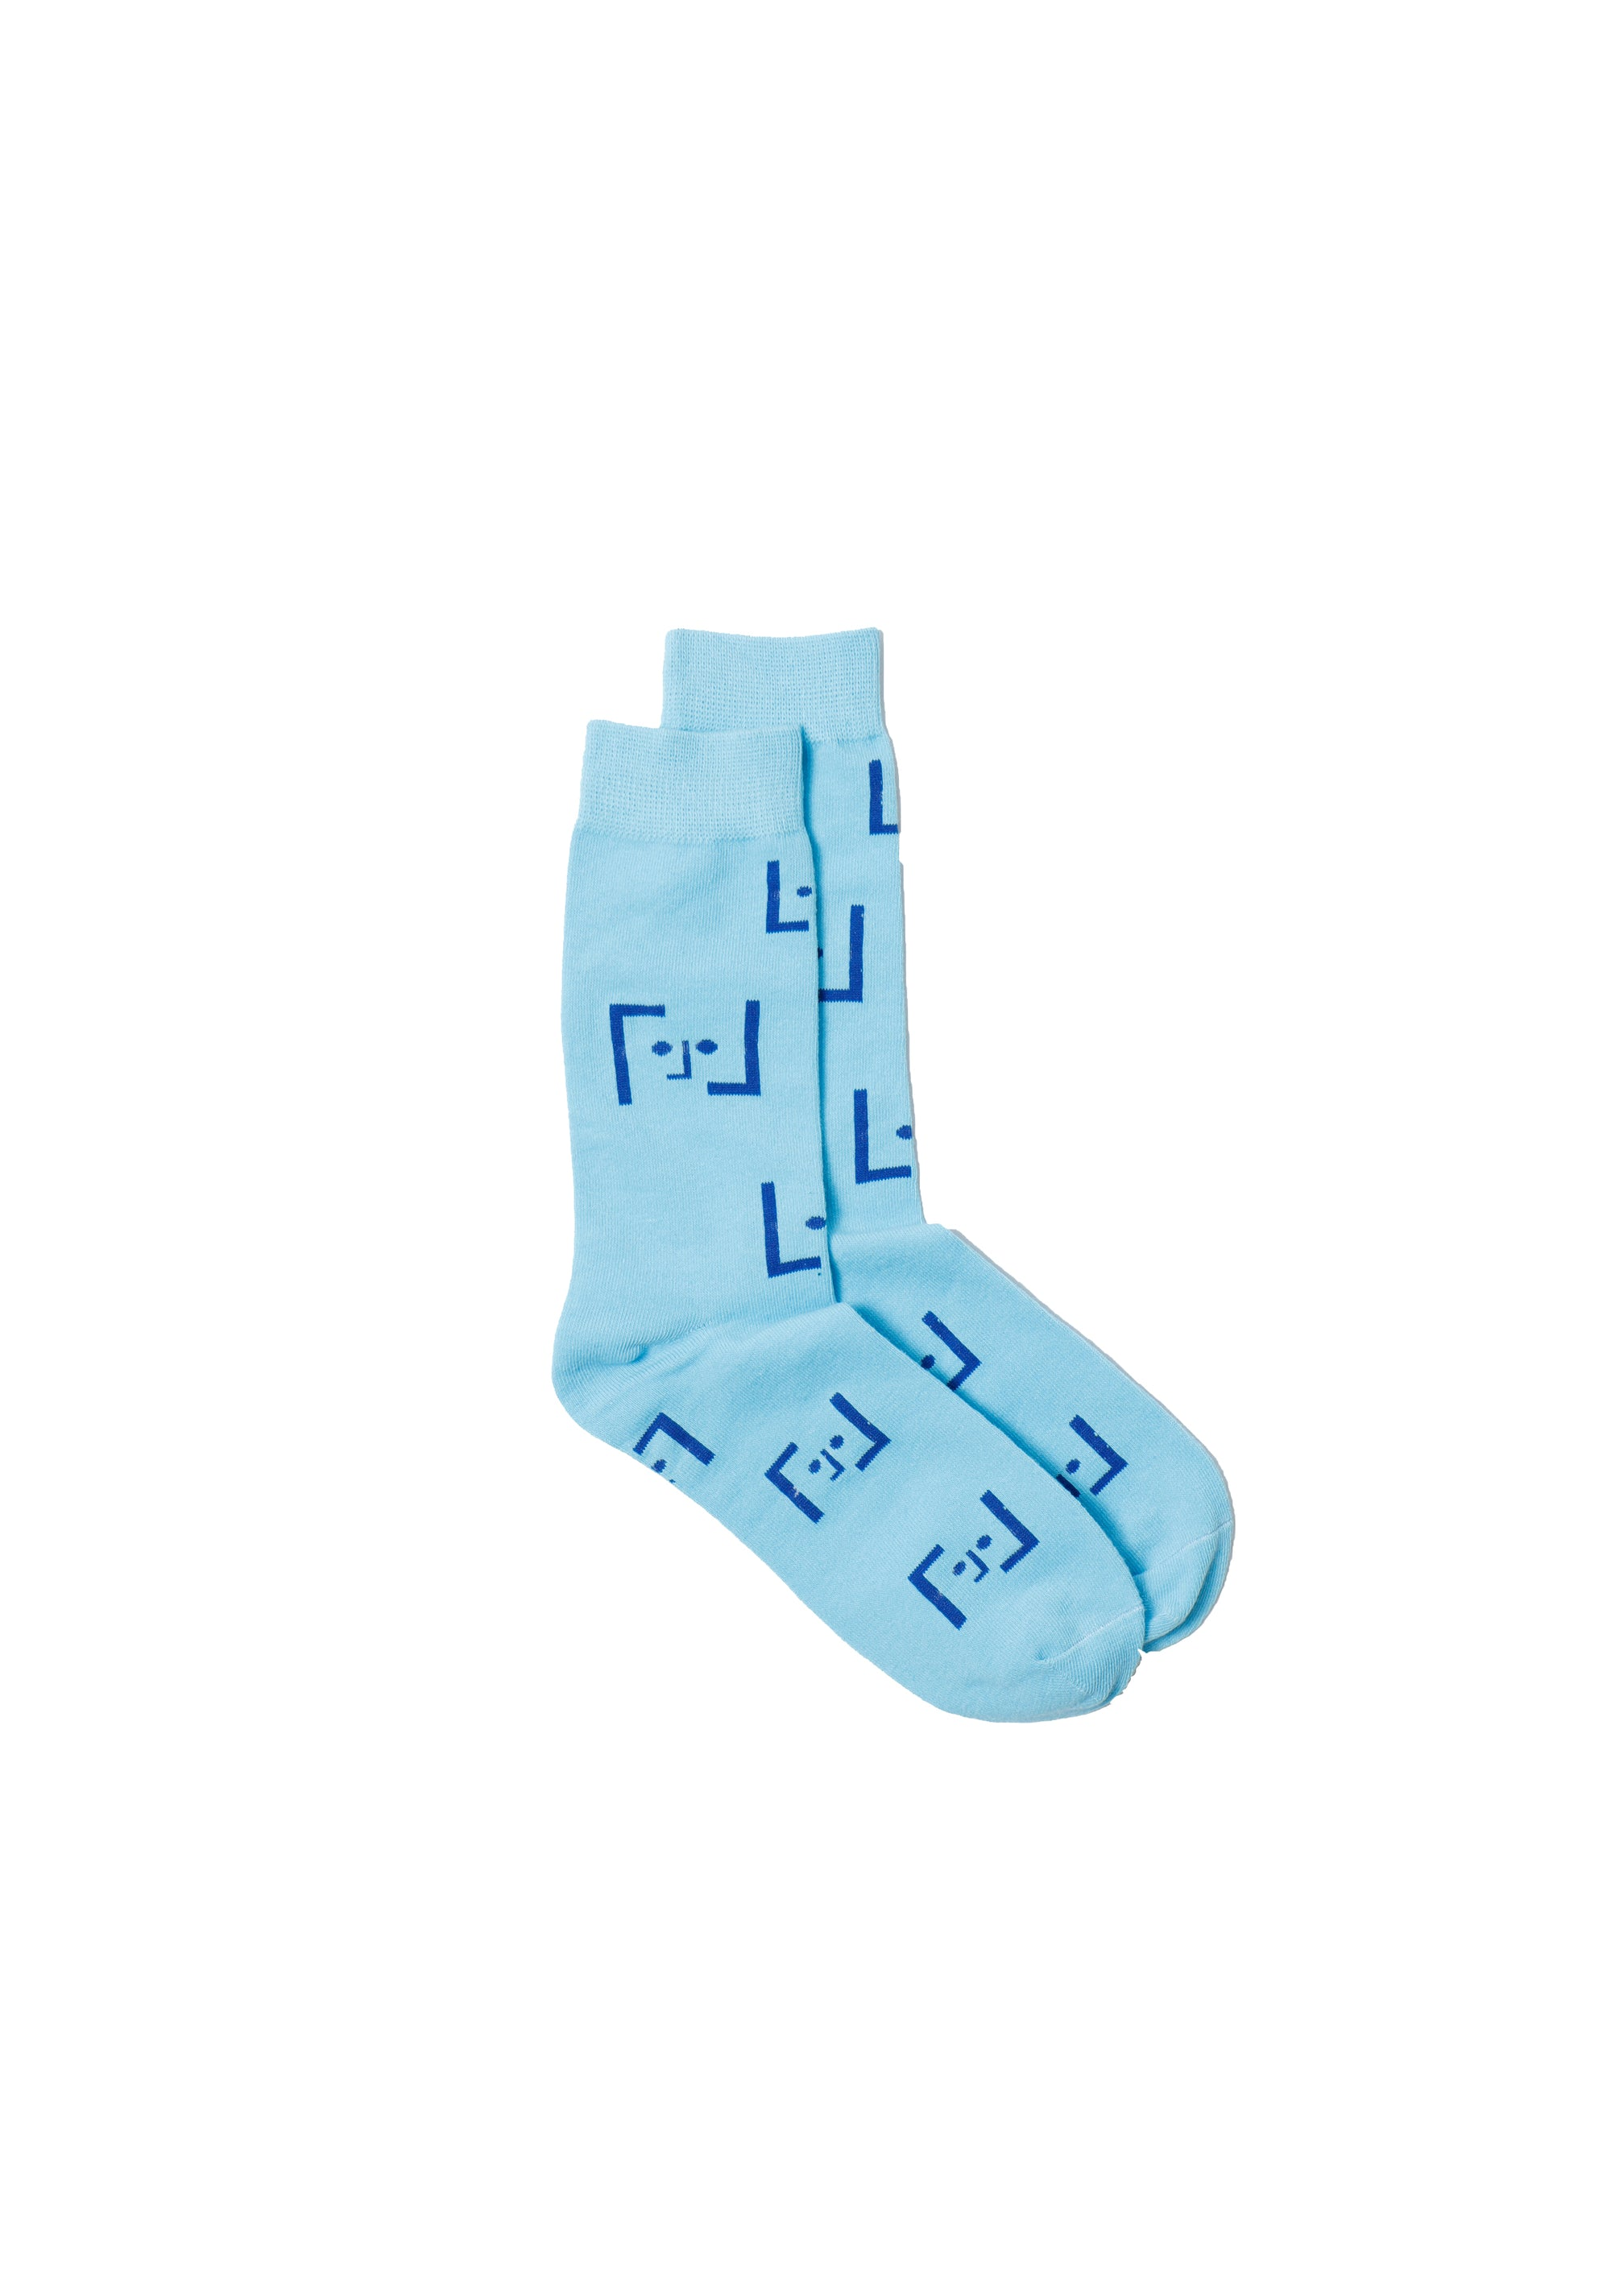 Socks L'origine L'Face Soft Blue